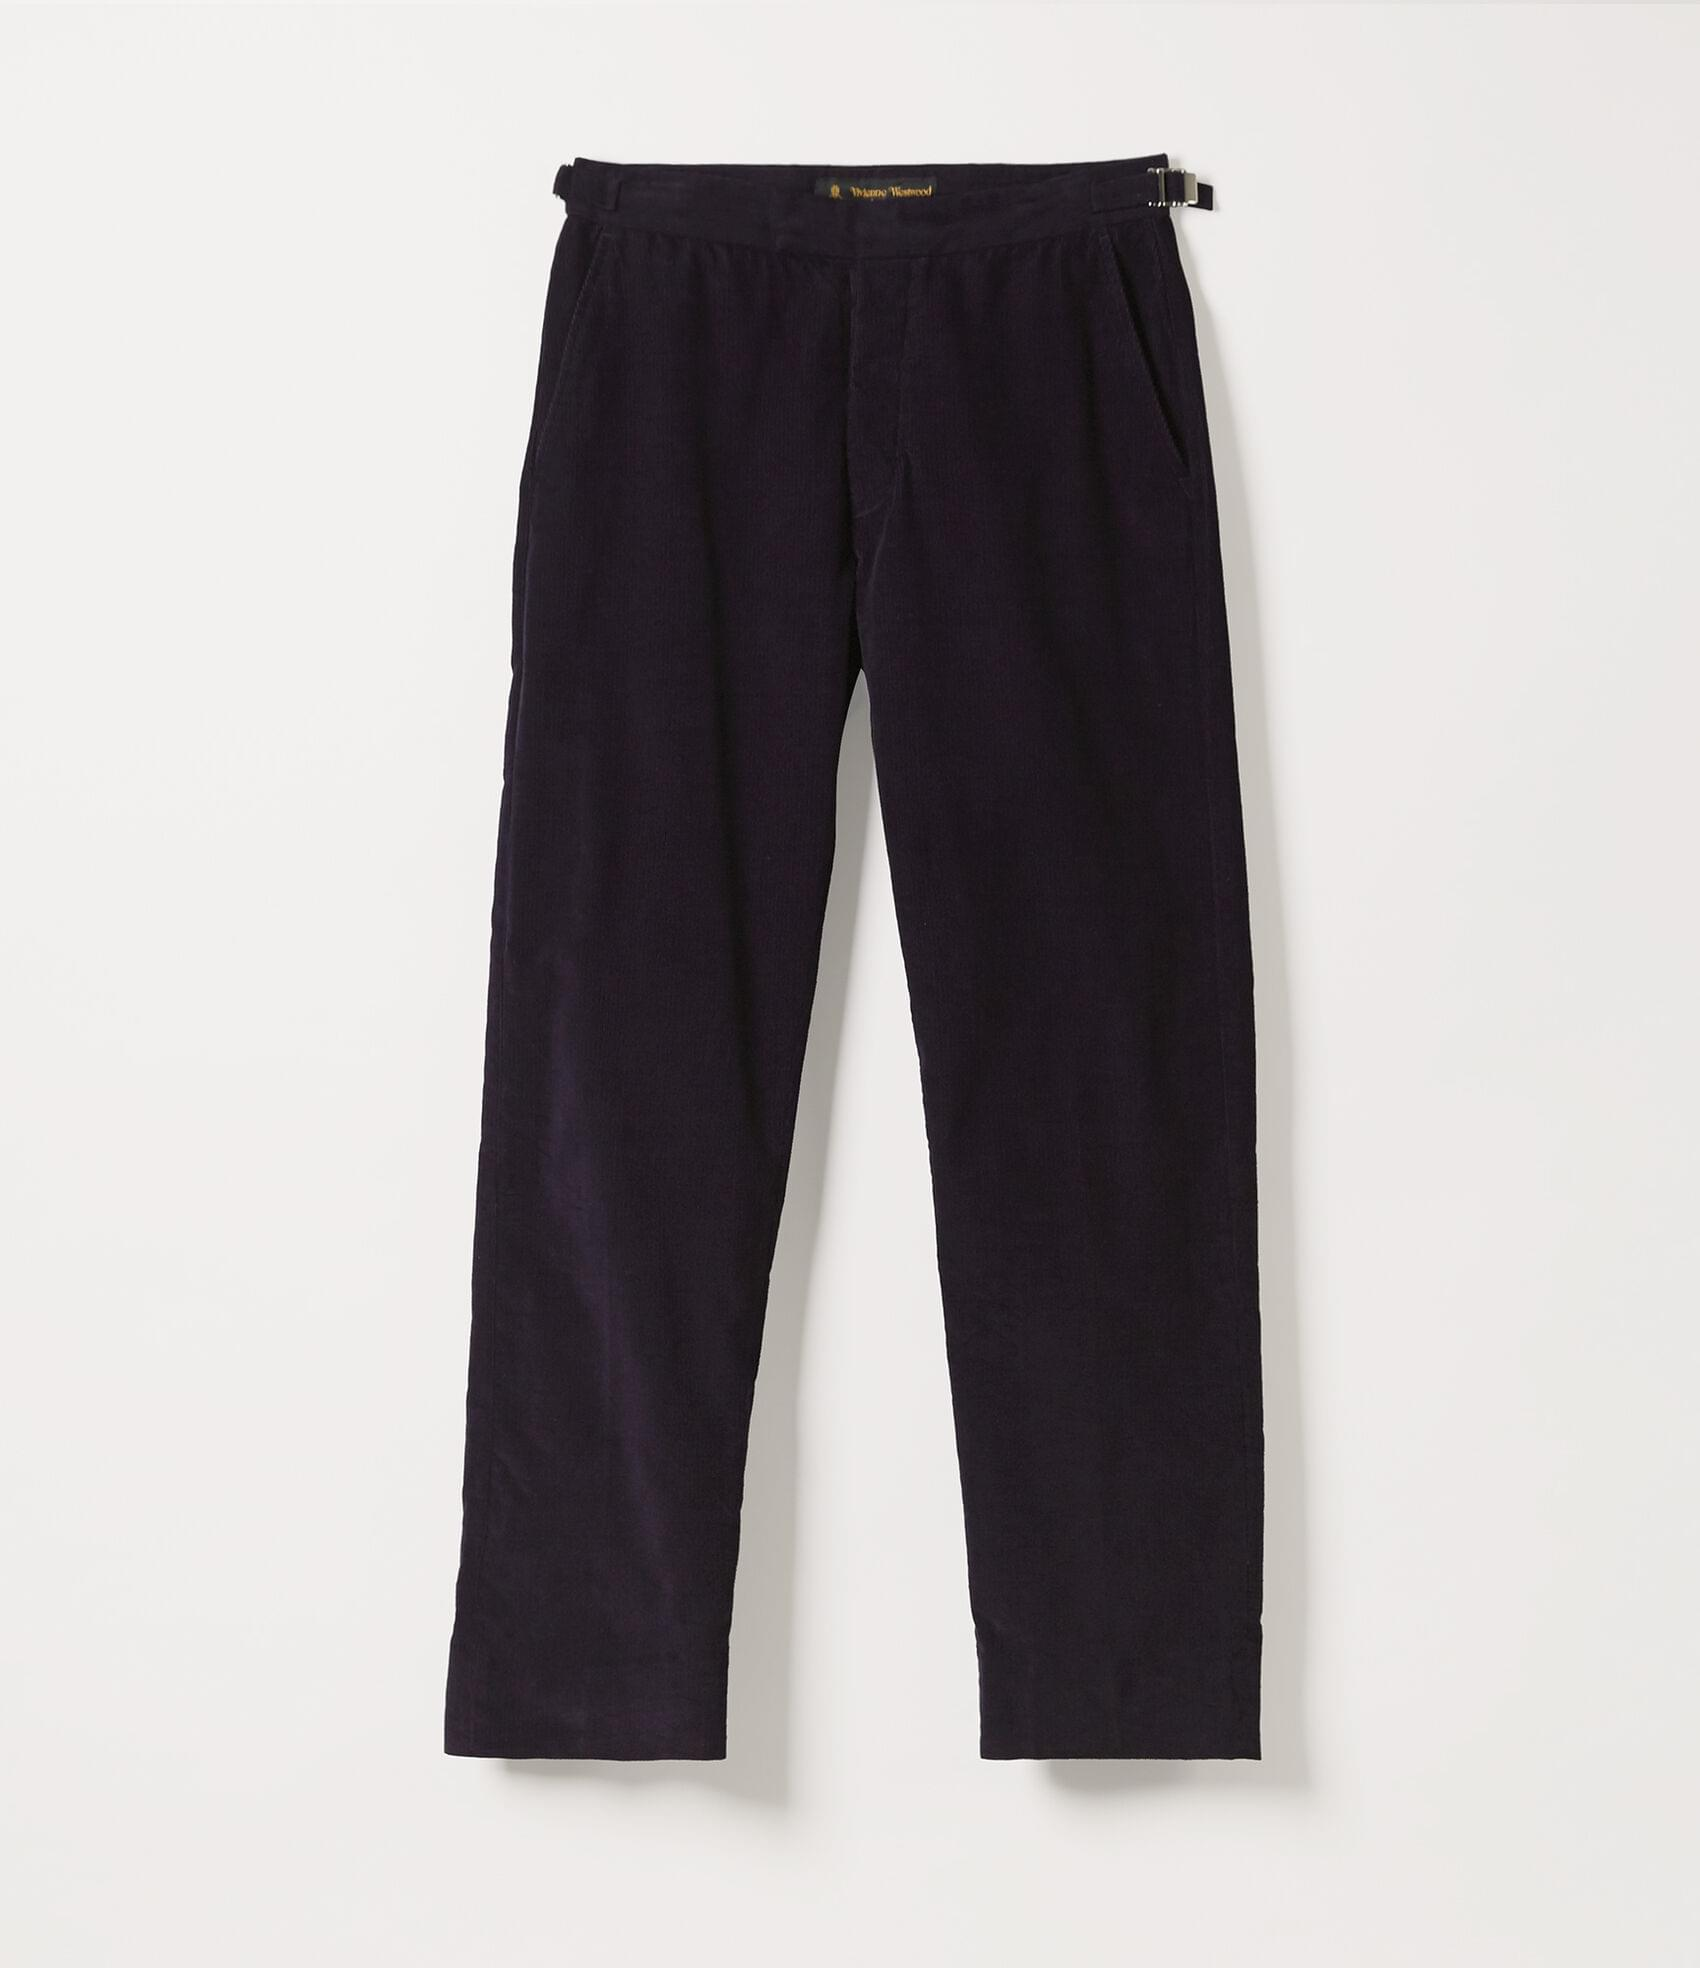 Vivienne Westwood MENS TROUSERS NAVY